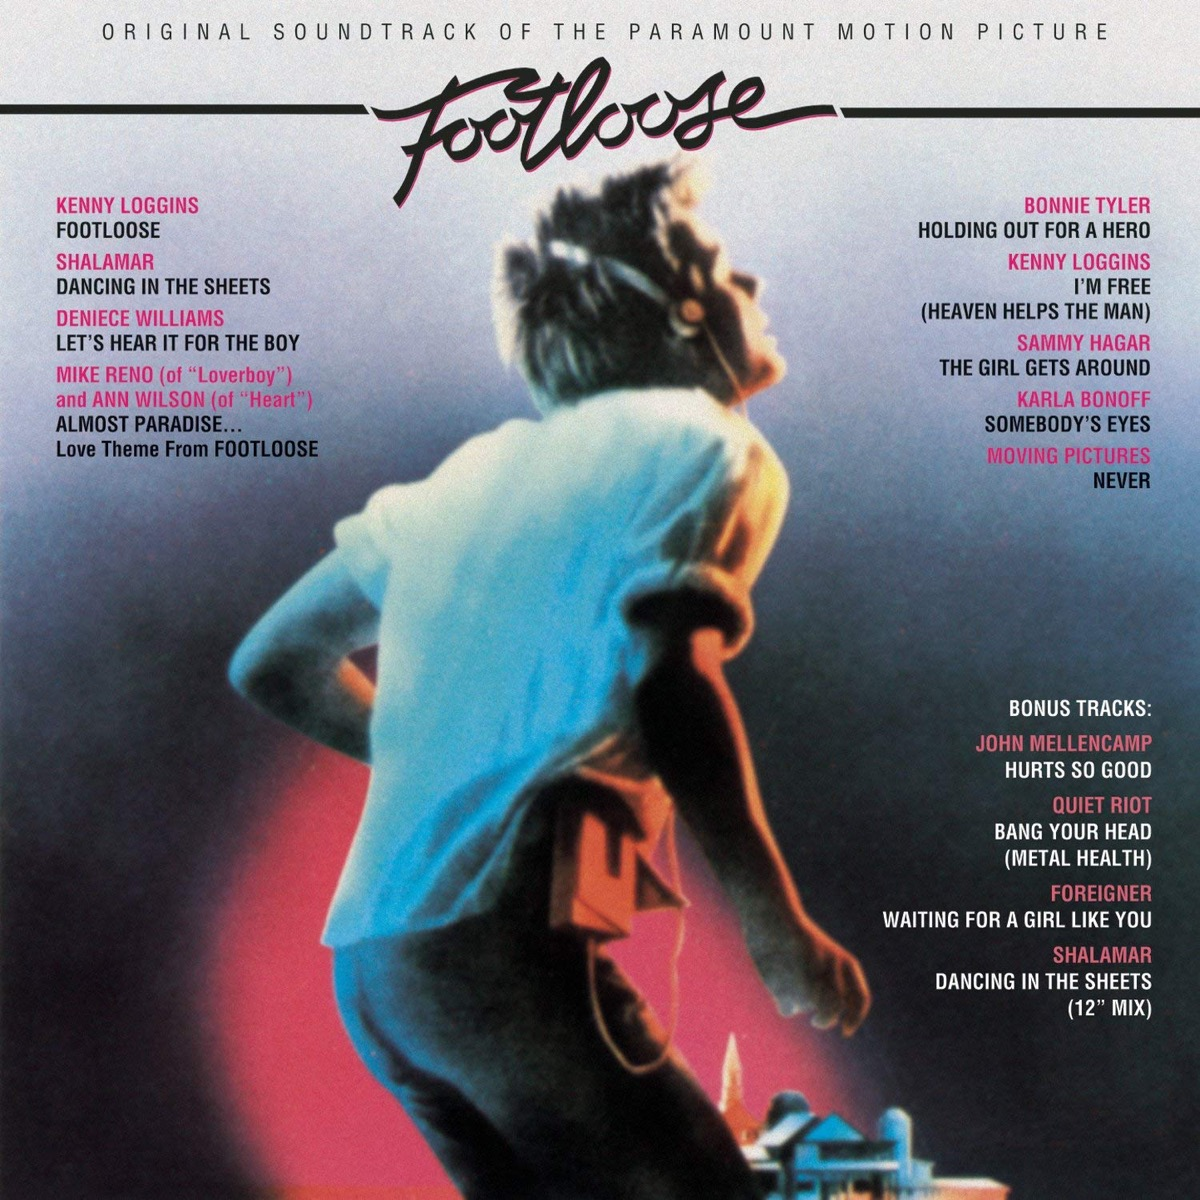 footloose movie soundtrack cover